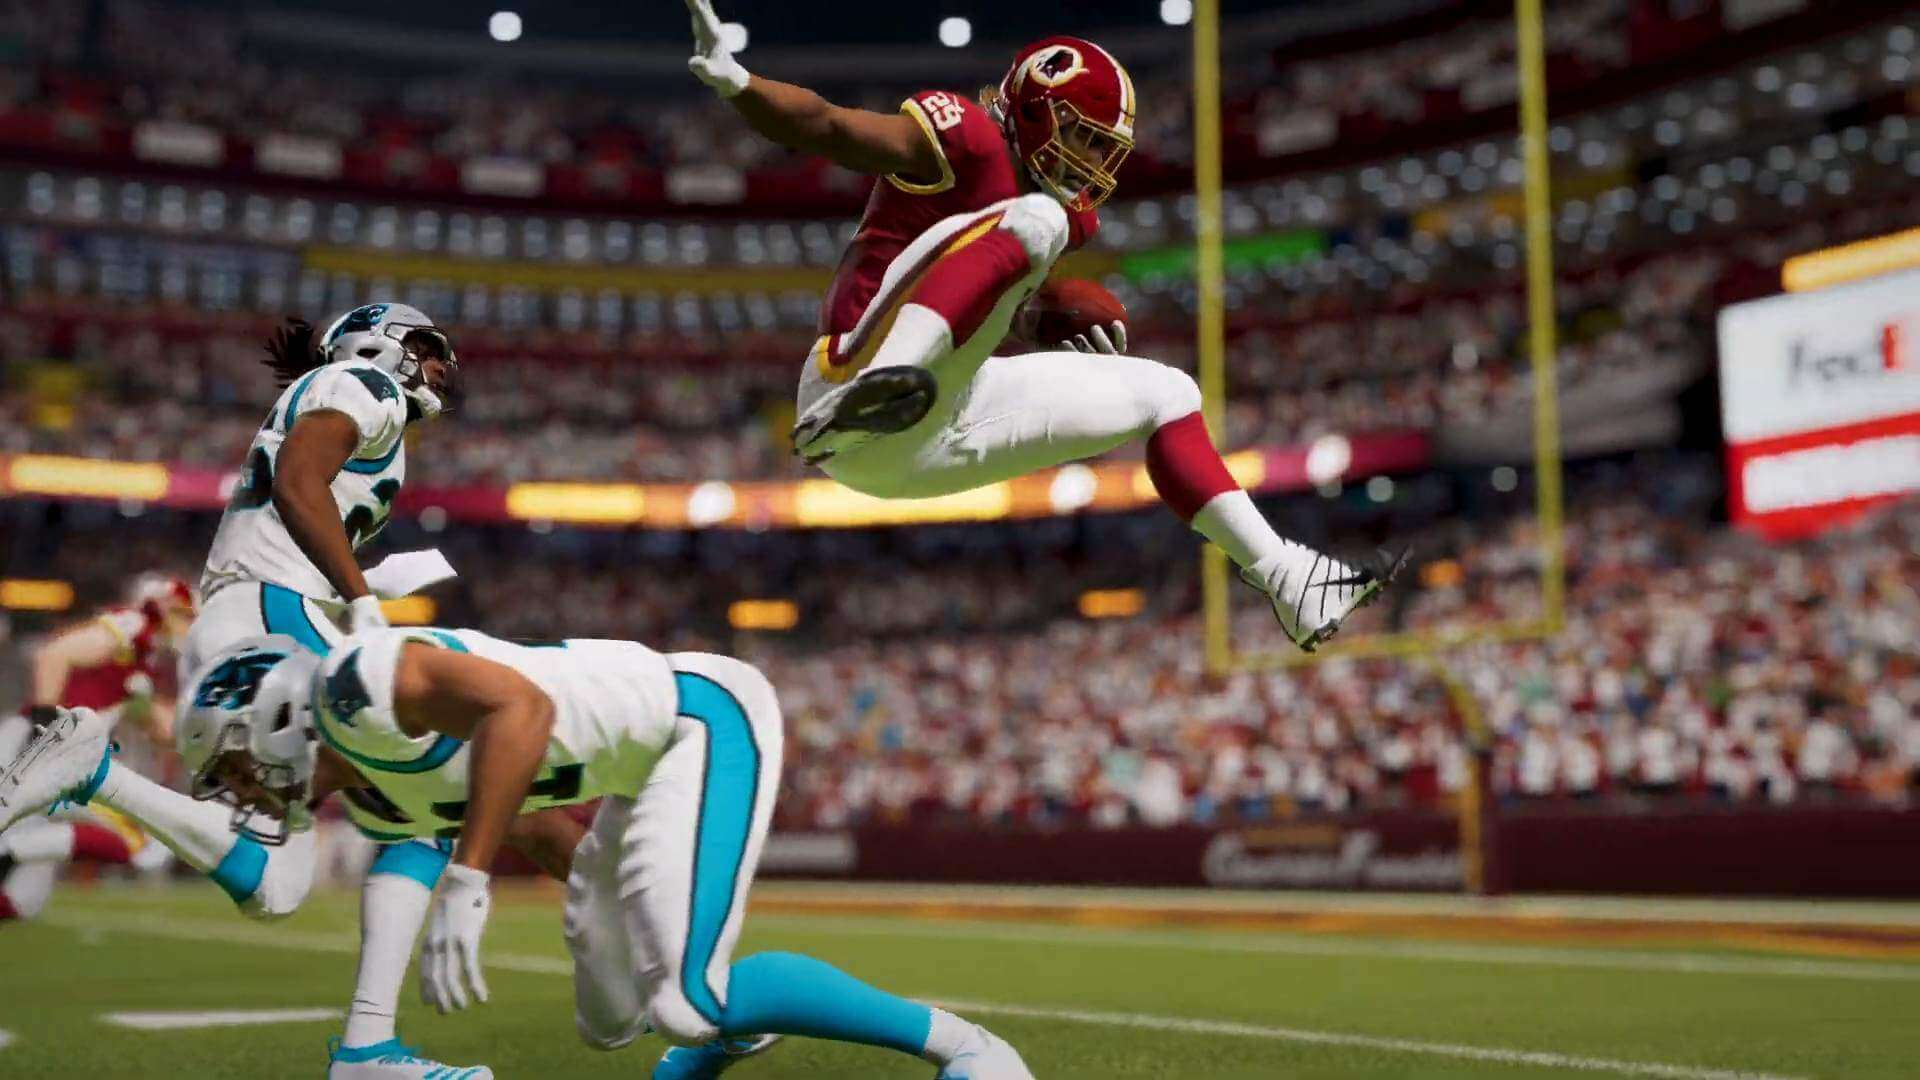 Why Do Non-Sports Fans Like Sports-Themed Video Games?